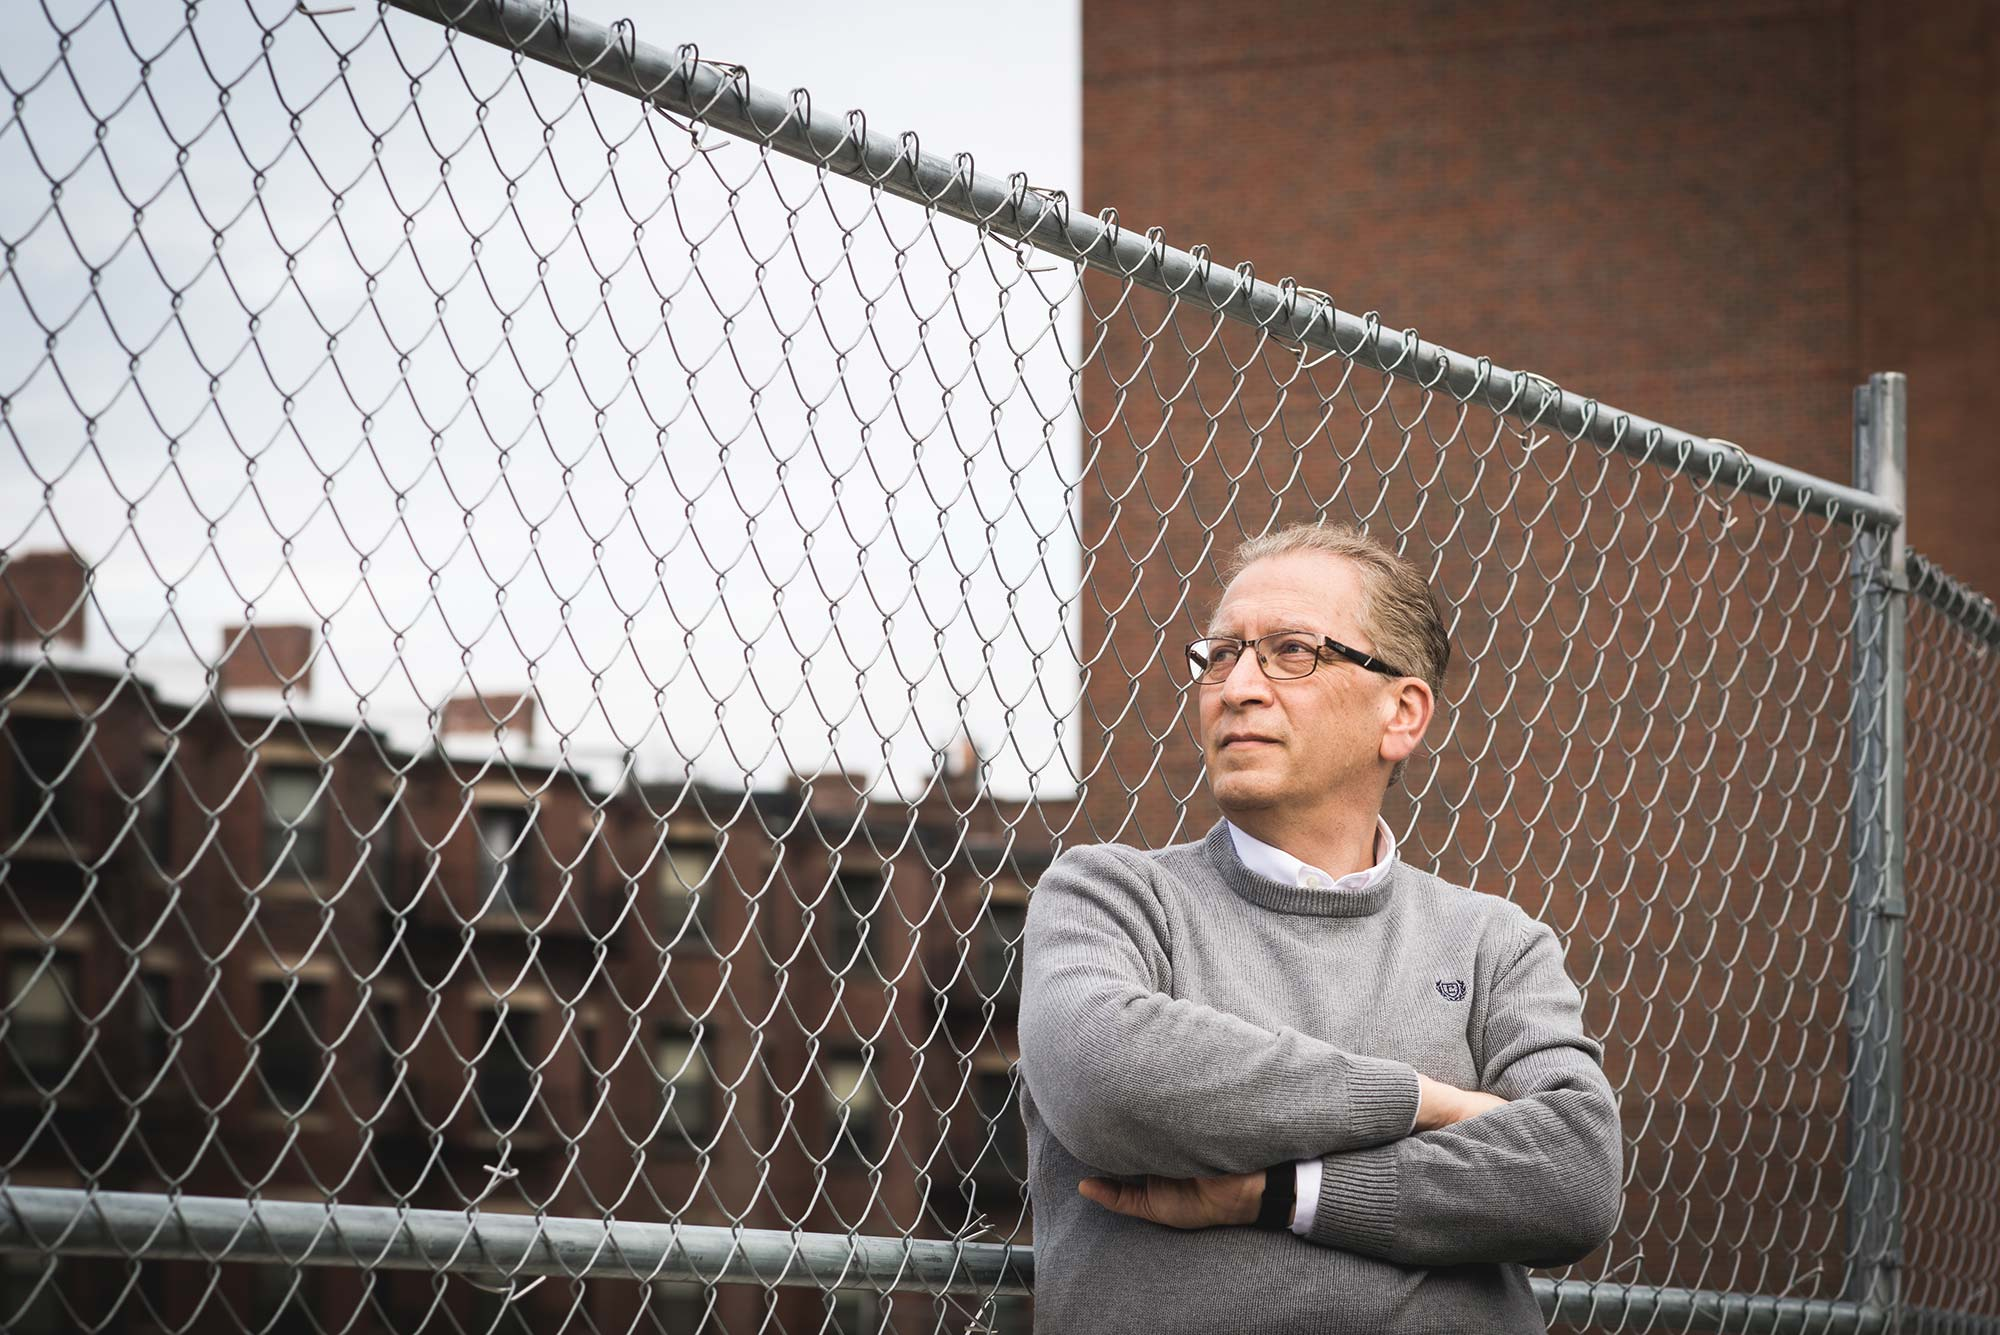 Azer Bestavros, associate provost for computing and data sciences, standing with his arms crossed in a gray sweater and looking off into the middle distance as he leans on a fence near the site of the future data sciences building.